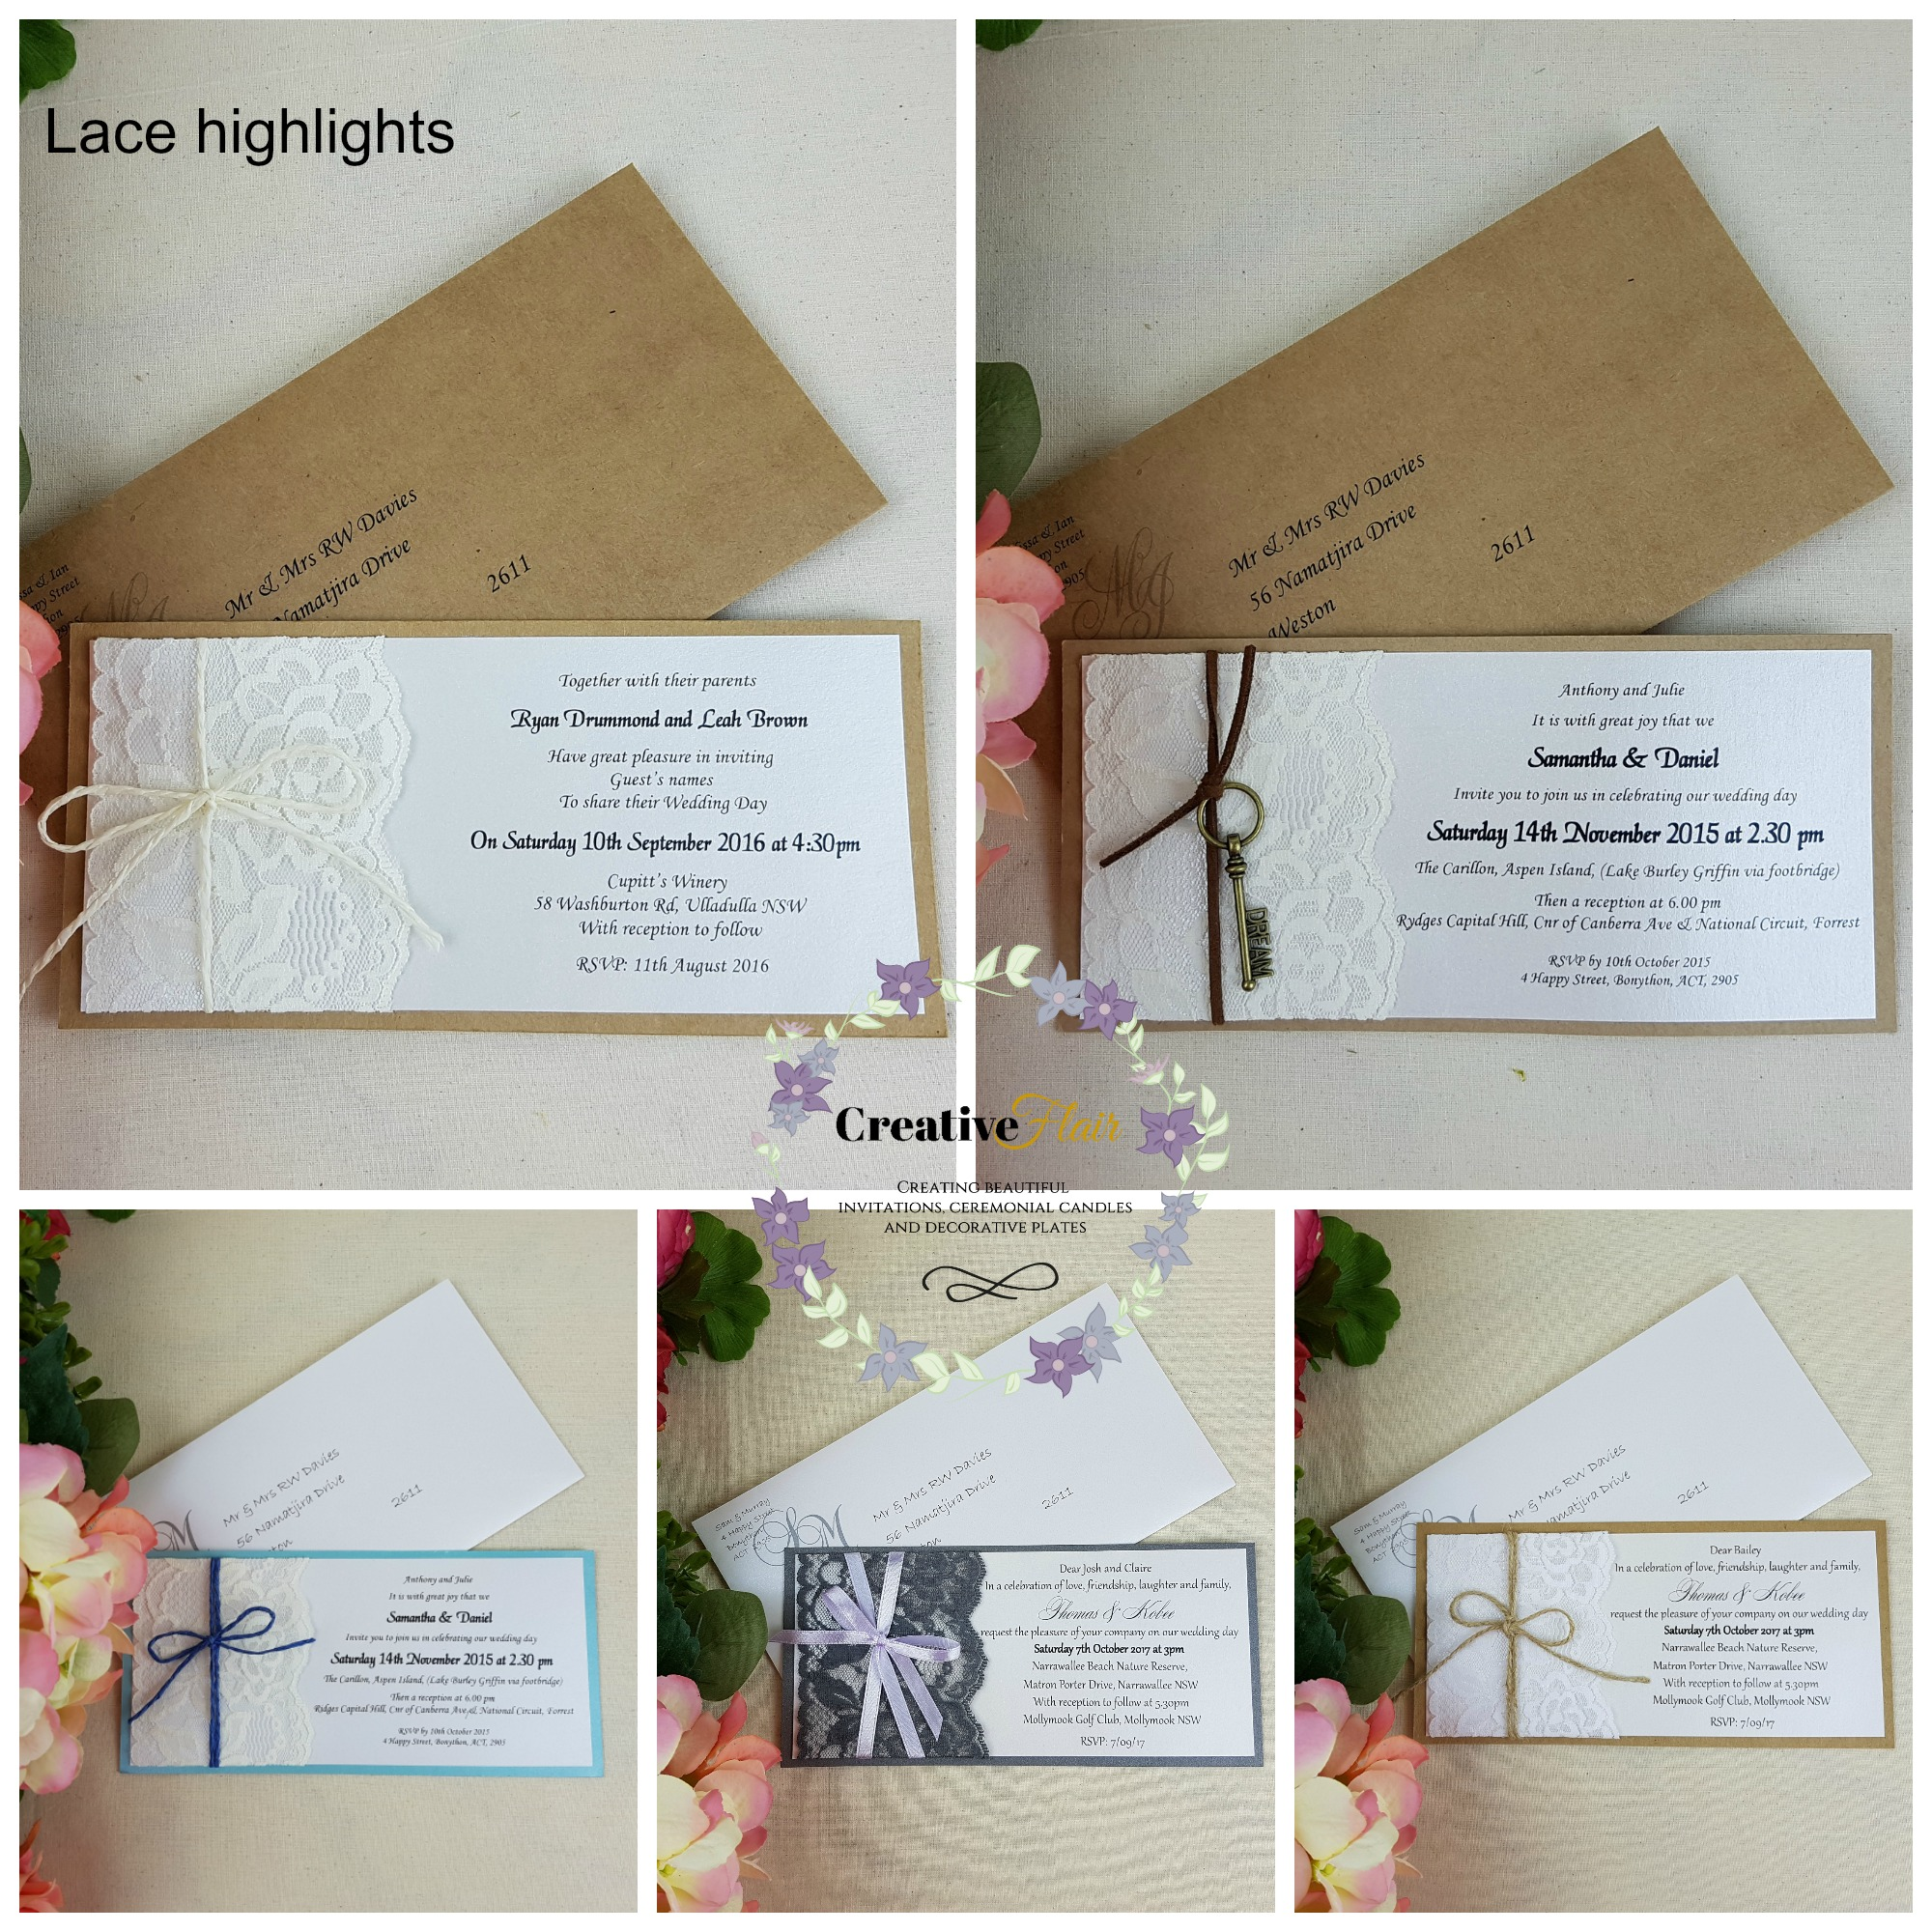 Creative Flair - Wedding Invitations & Stationery - 4 Western Hill ...